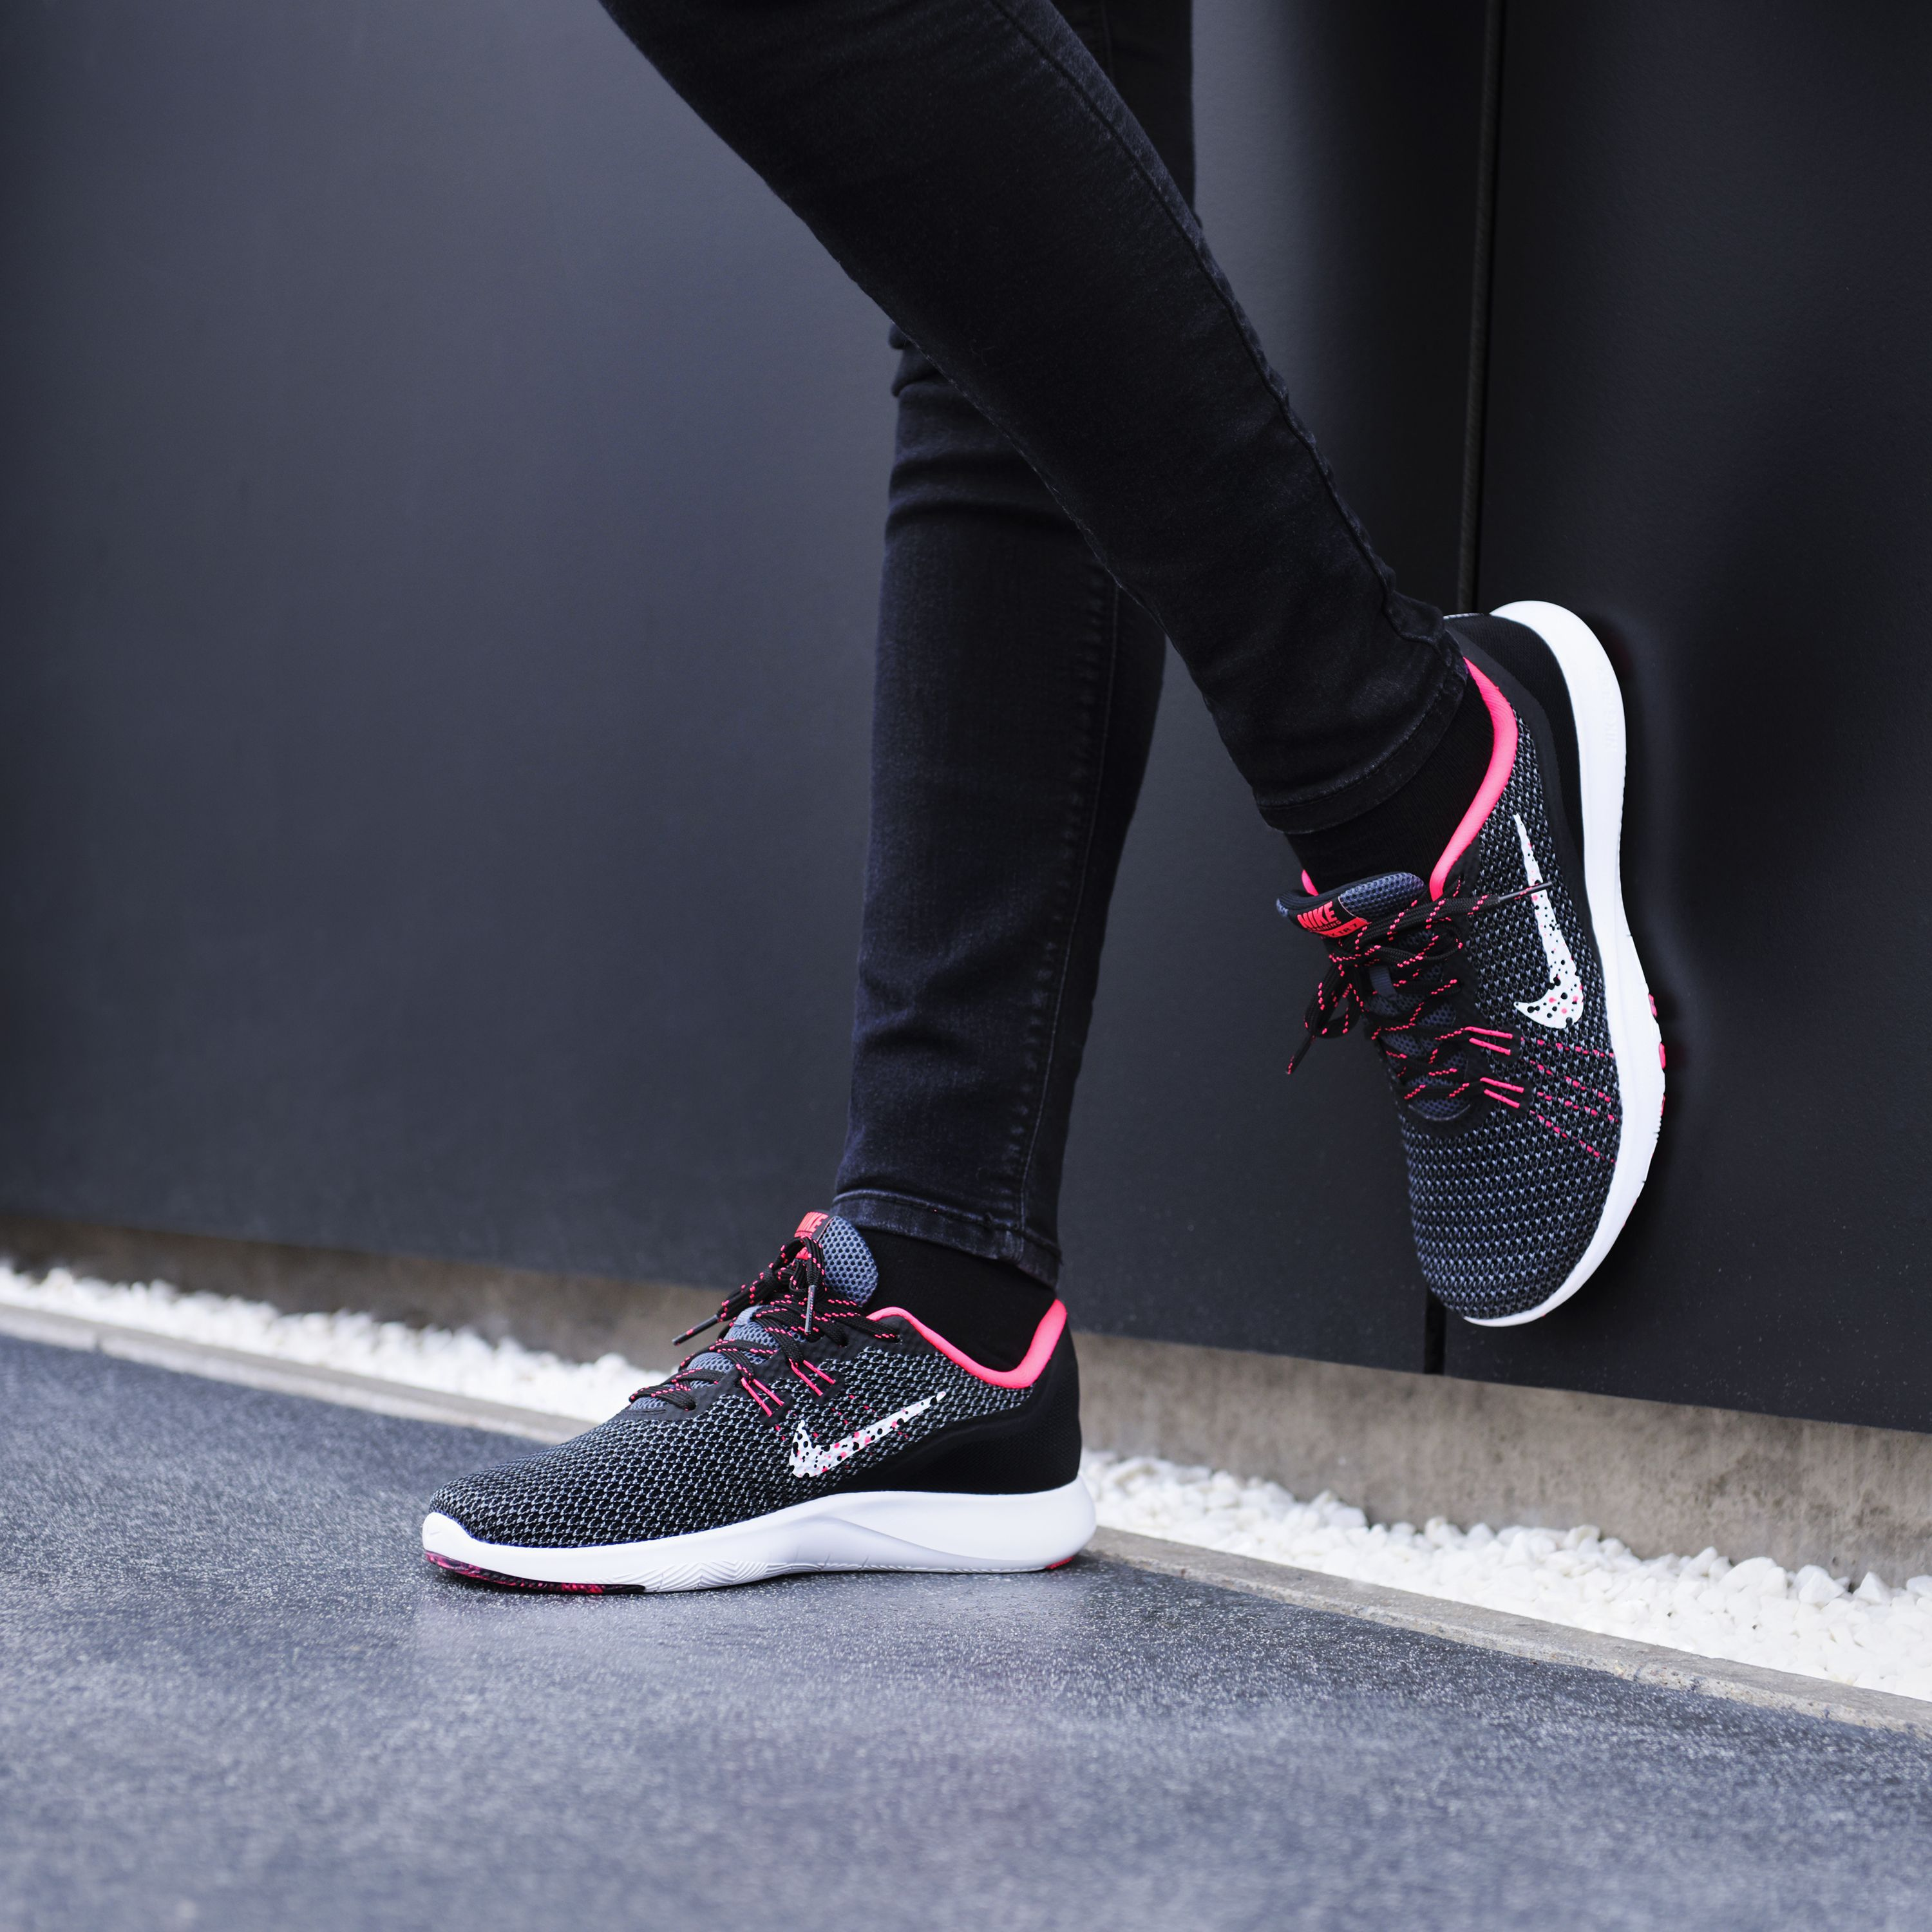 Flex in ultimate comfort with the Nike Flex trainers. With